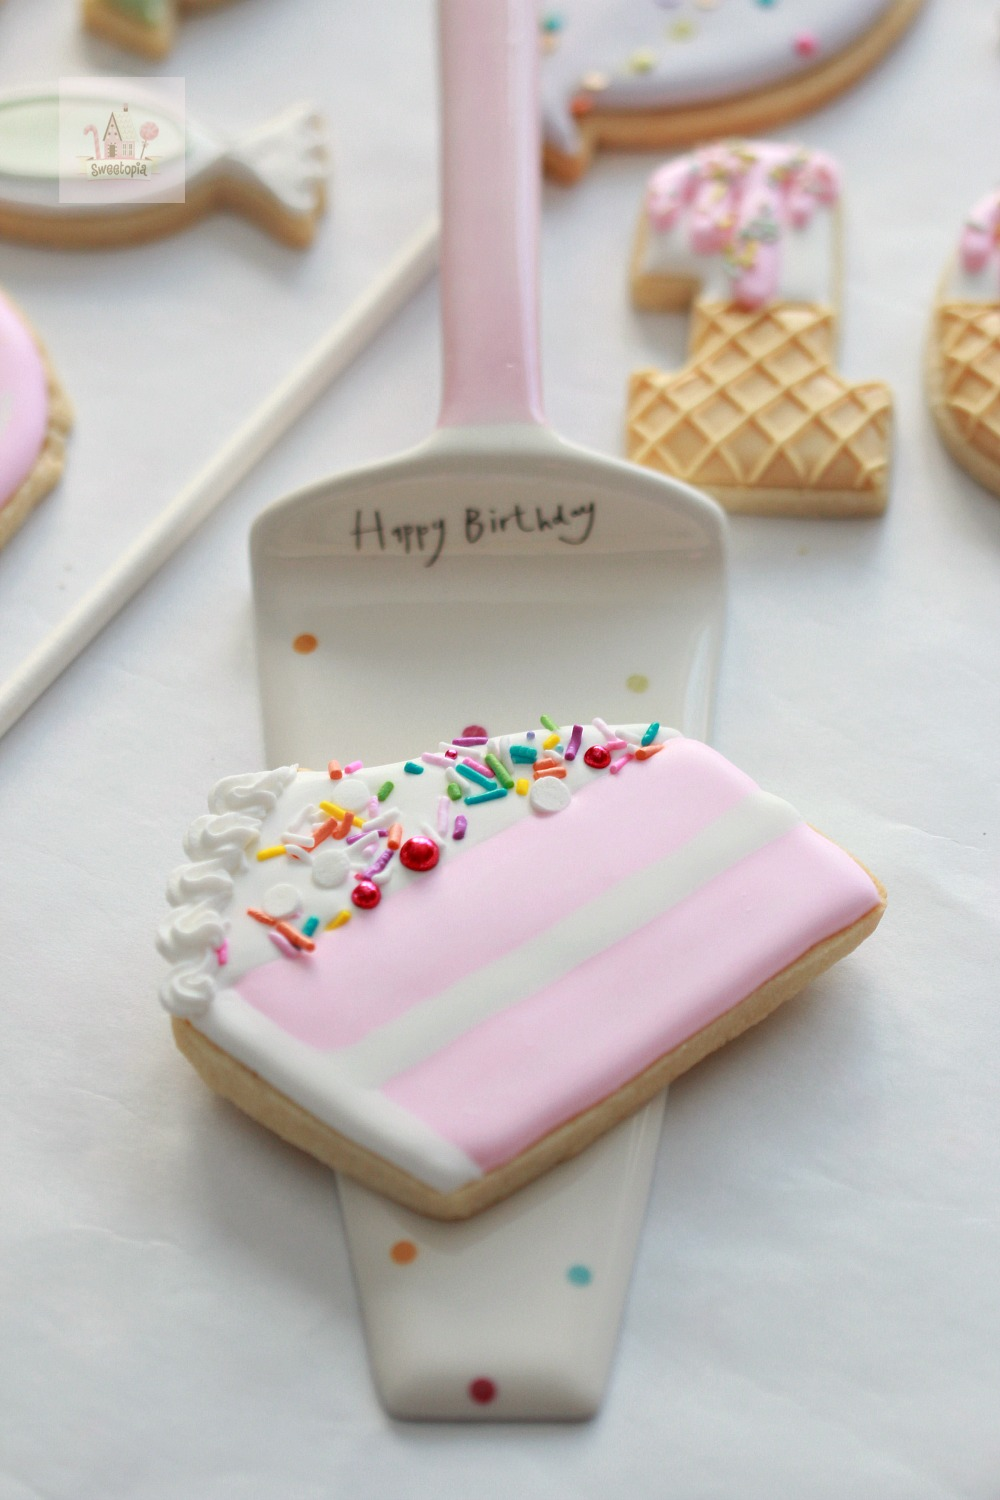 Cake Slice Decorated Cookie